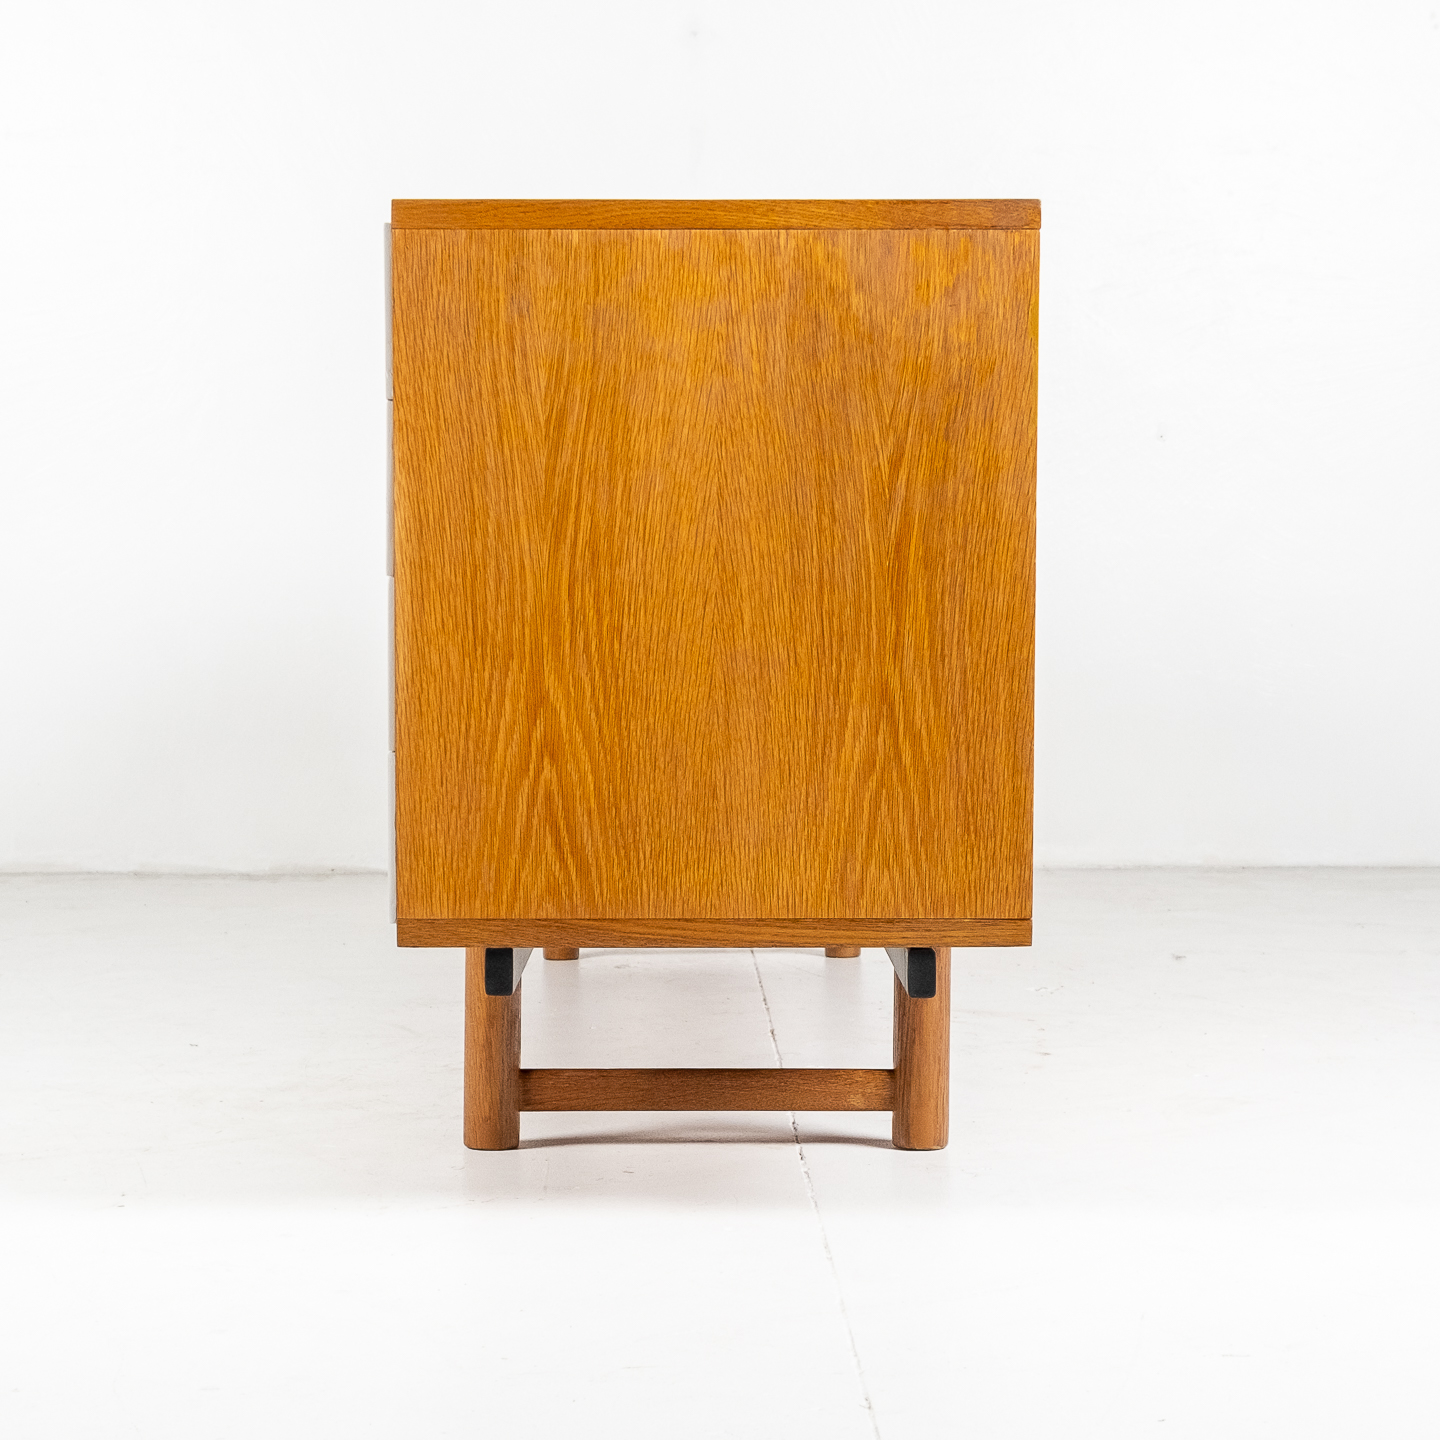 'made To Measure' Sideboard By By Cees Braakman For Pastoe, 1960s, The Netherlands 90